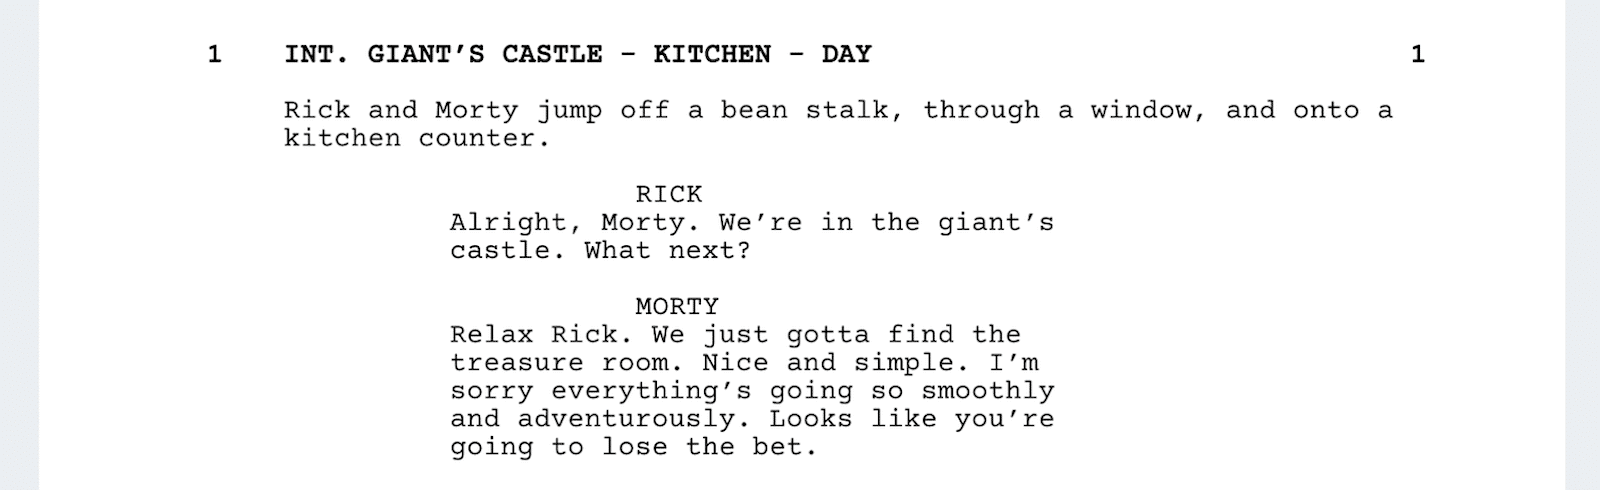 Rick and Morty Script - Gian't Lair - StudioBinder